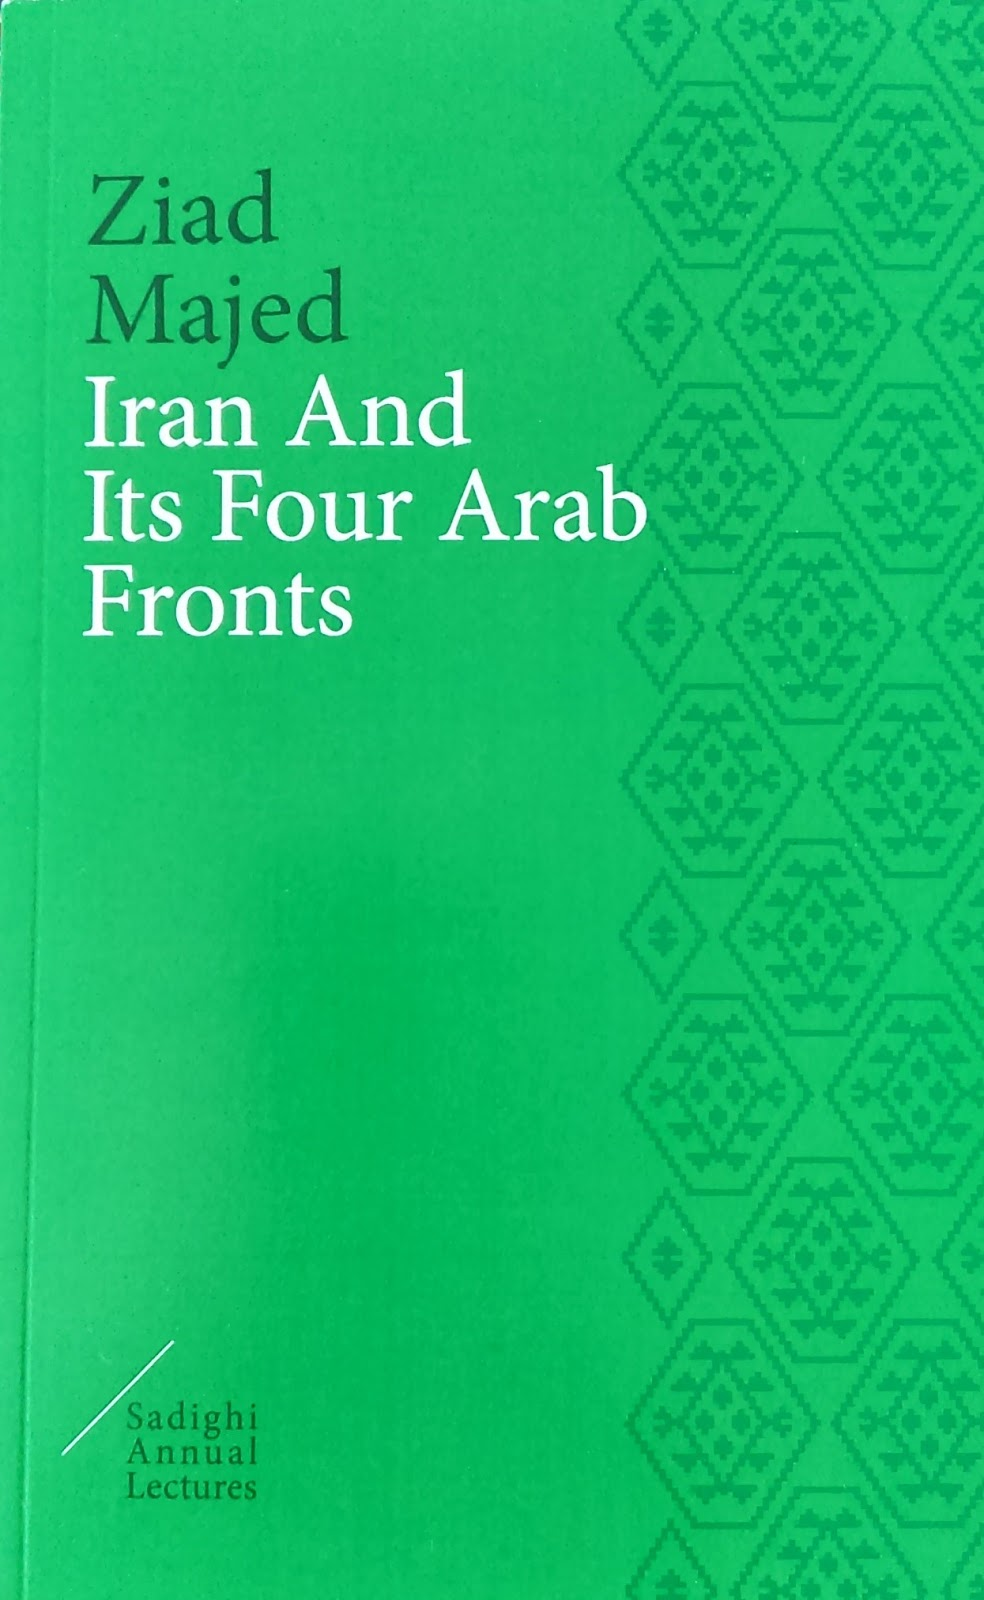 Iran and its four Arab fronts